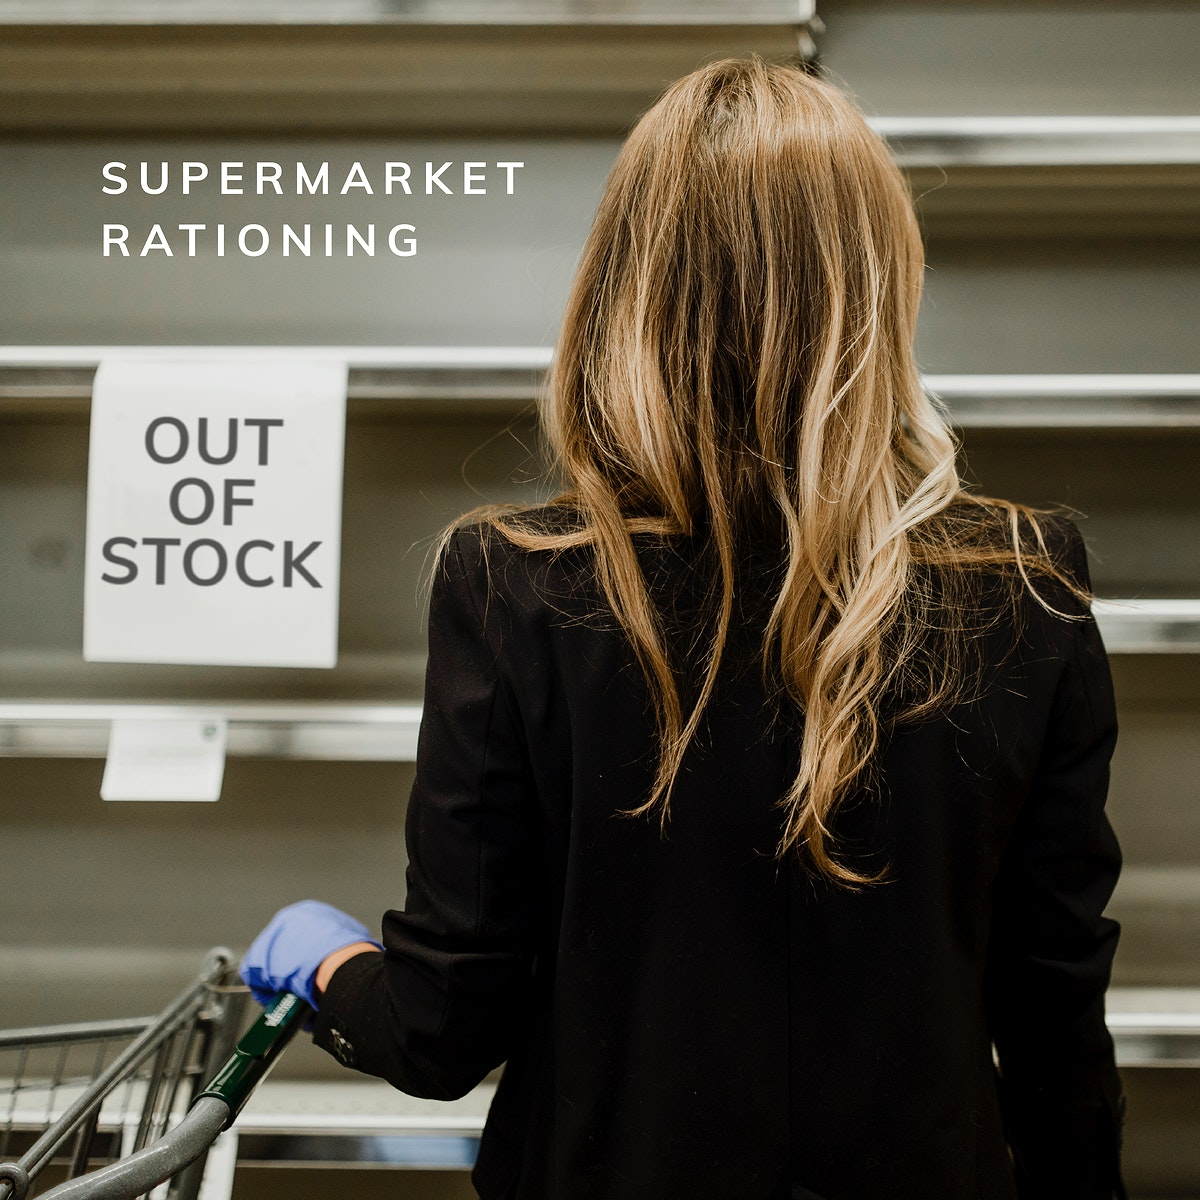 Emptied shelves due to panic buying at a supermarket